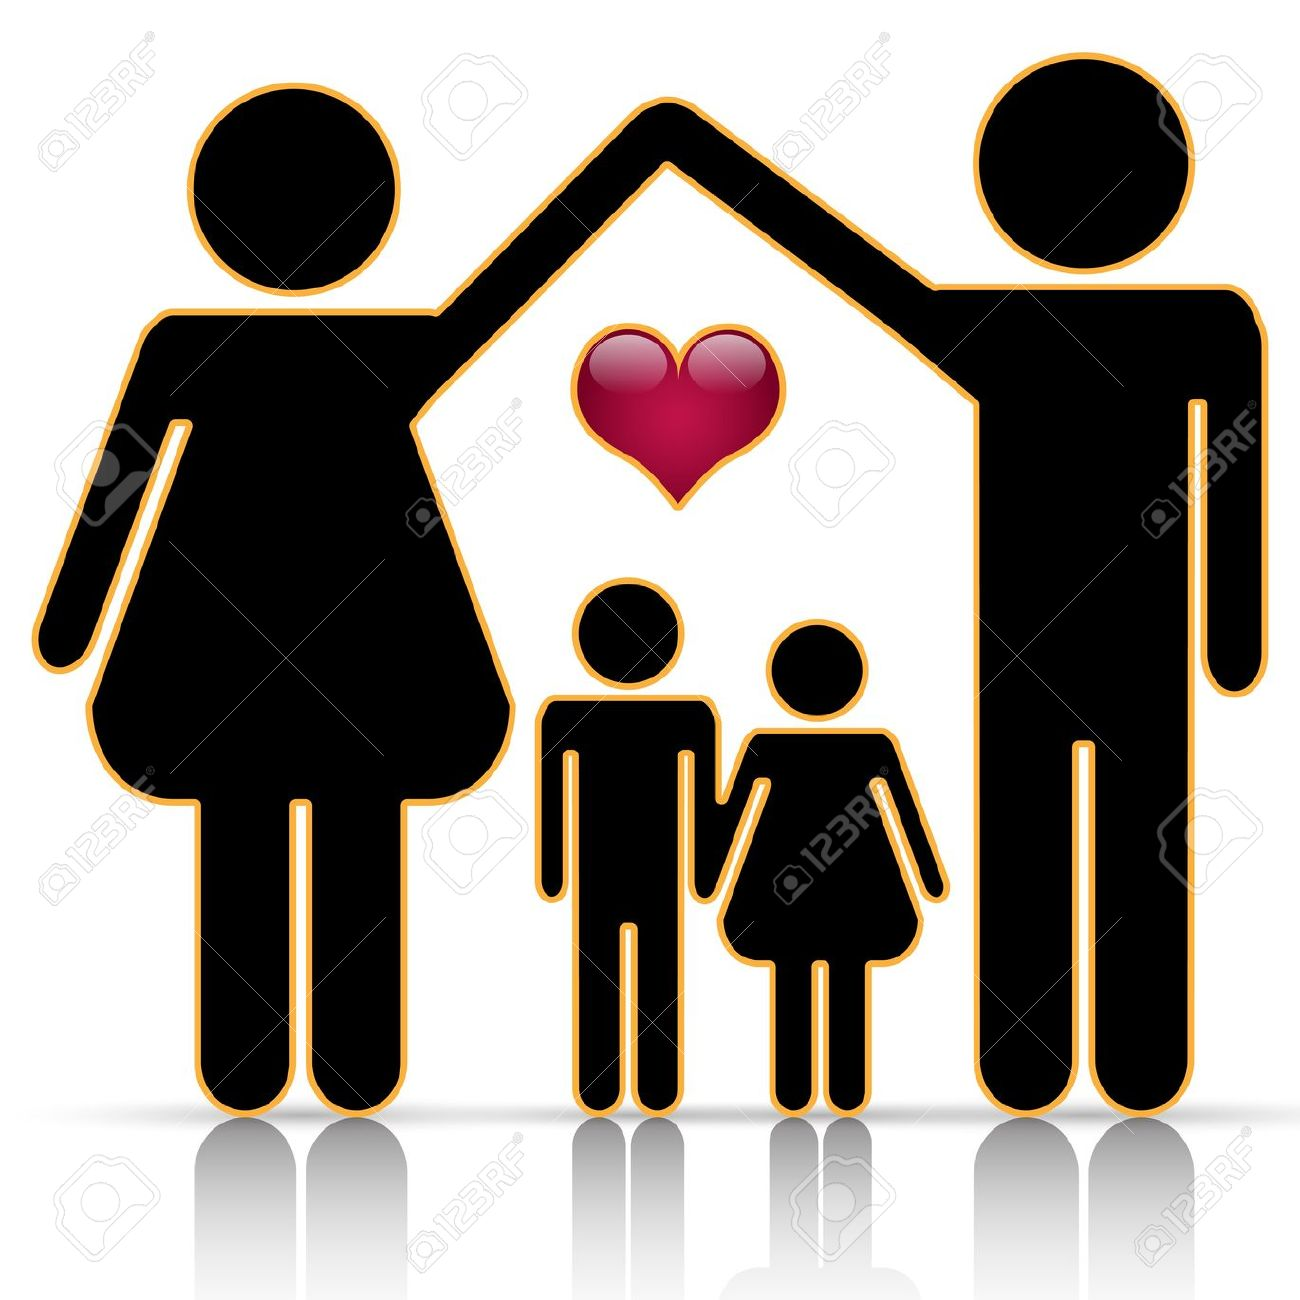 Families clipart. Silhouette family at getdrawings